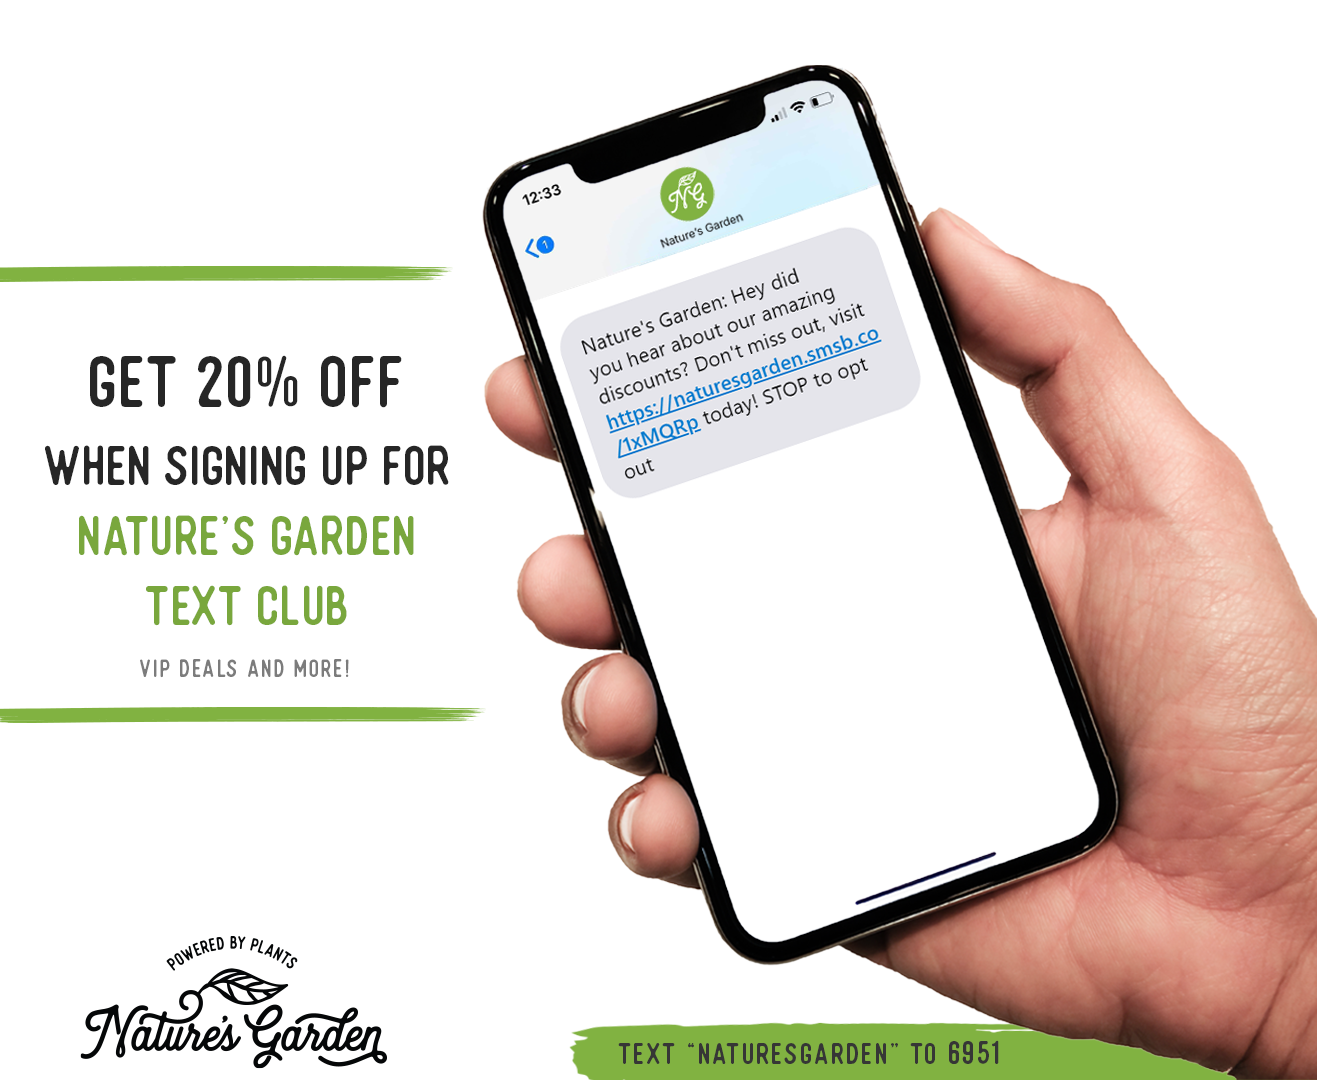 Sign up for Nature's Garden Text Club!